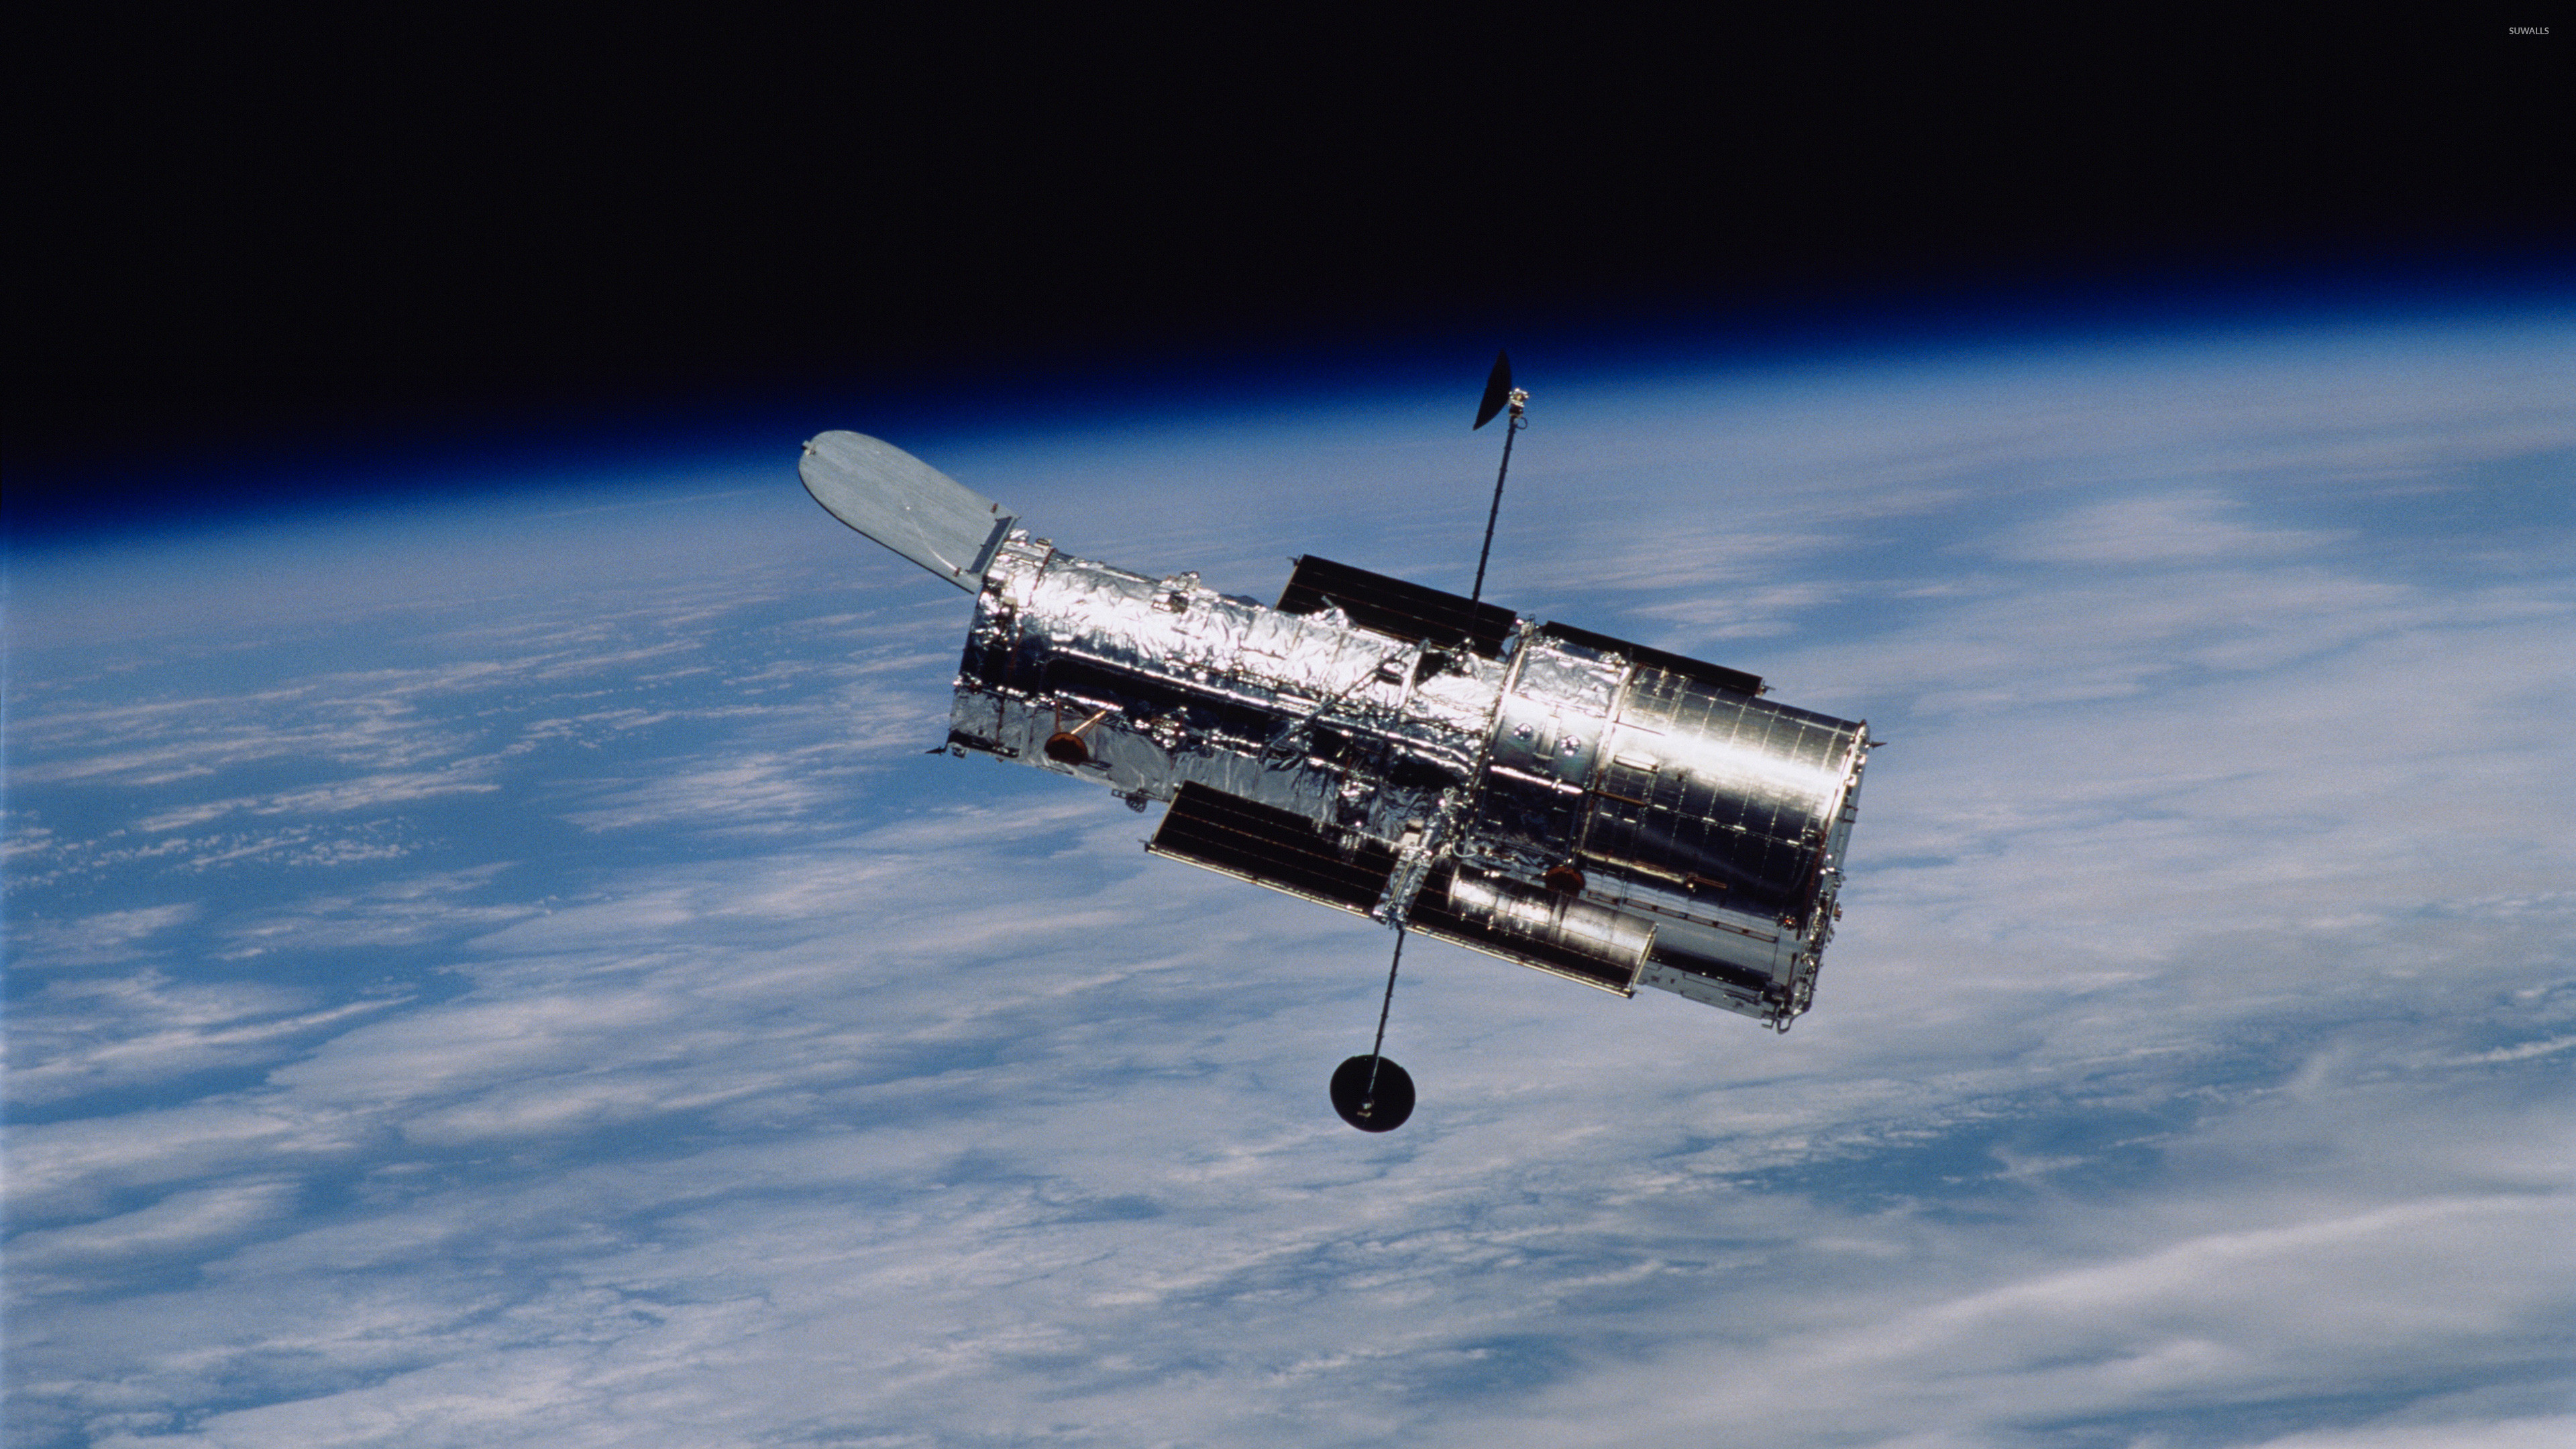 3840x2160 Hubble Space Telescope in orbit wallpaper  jpg